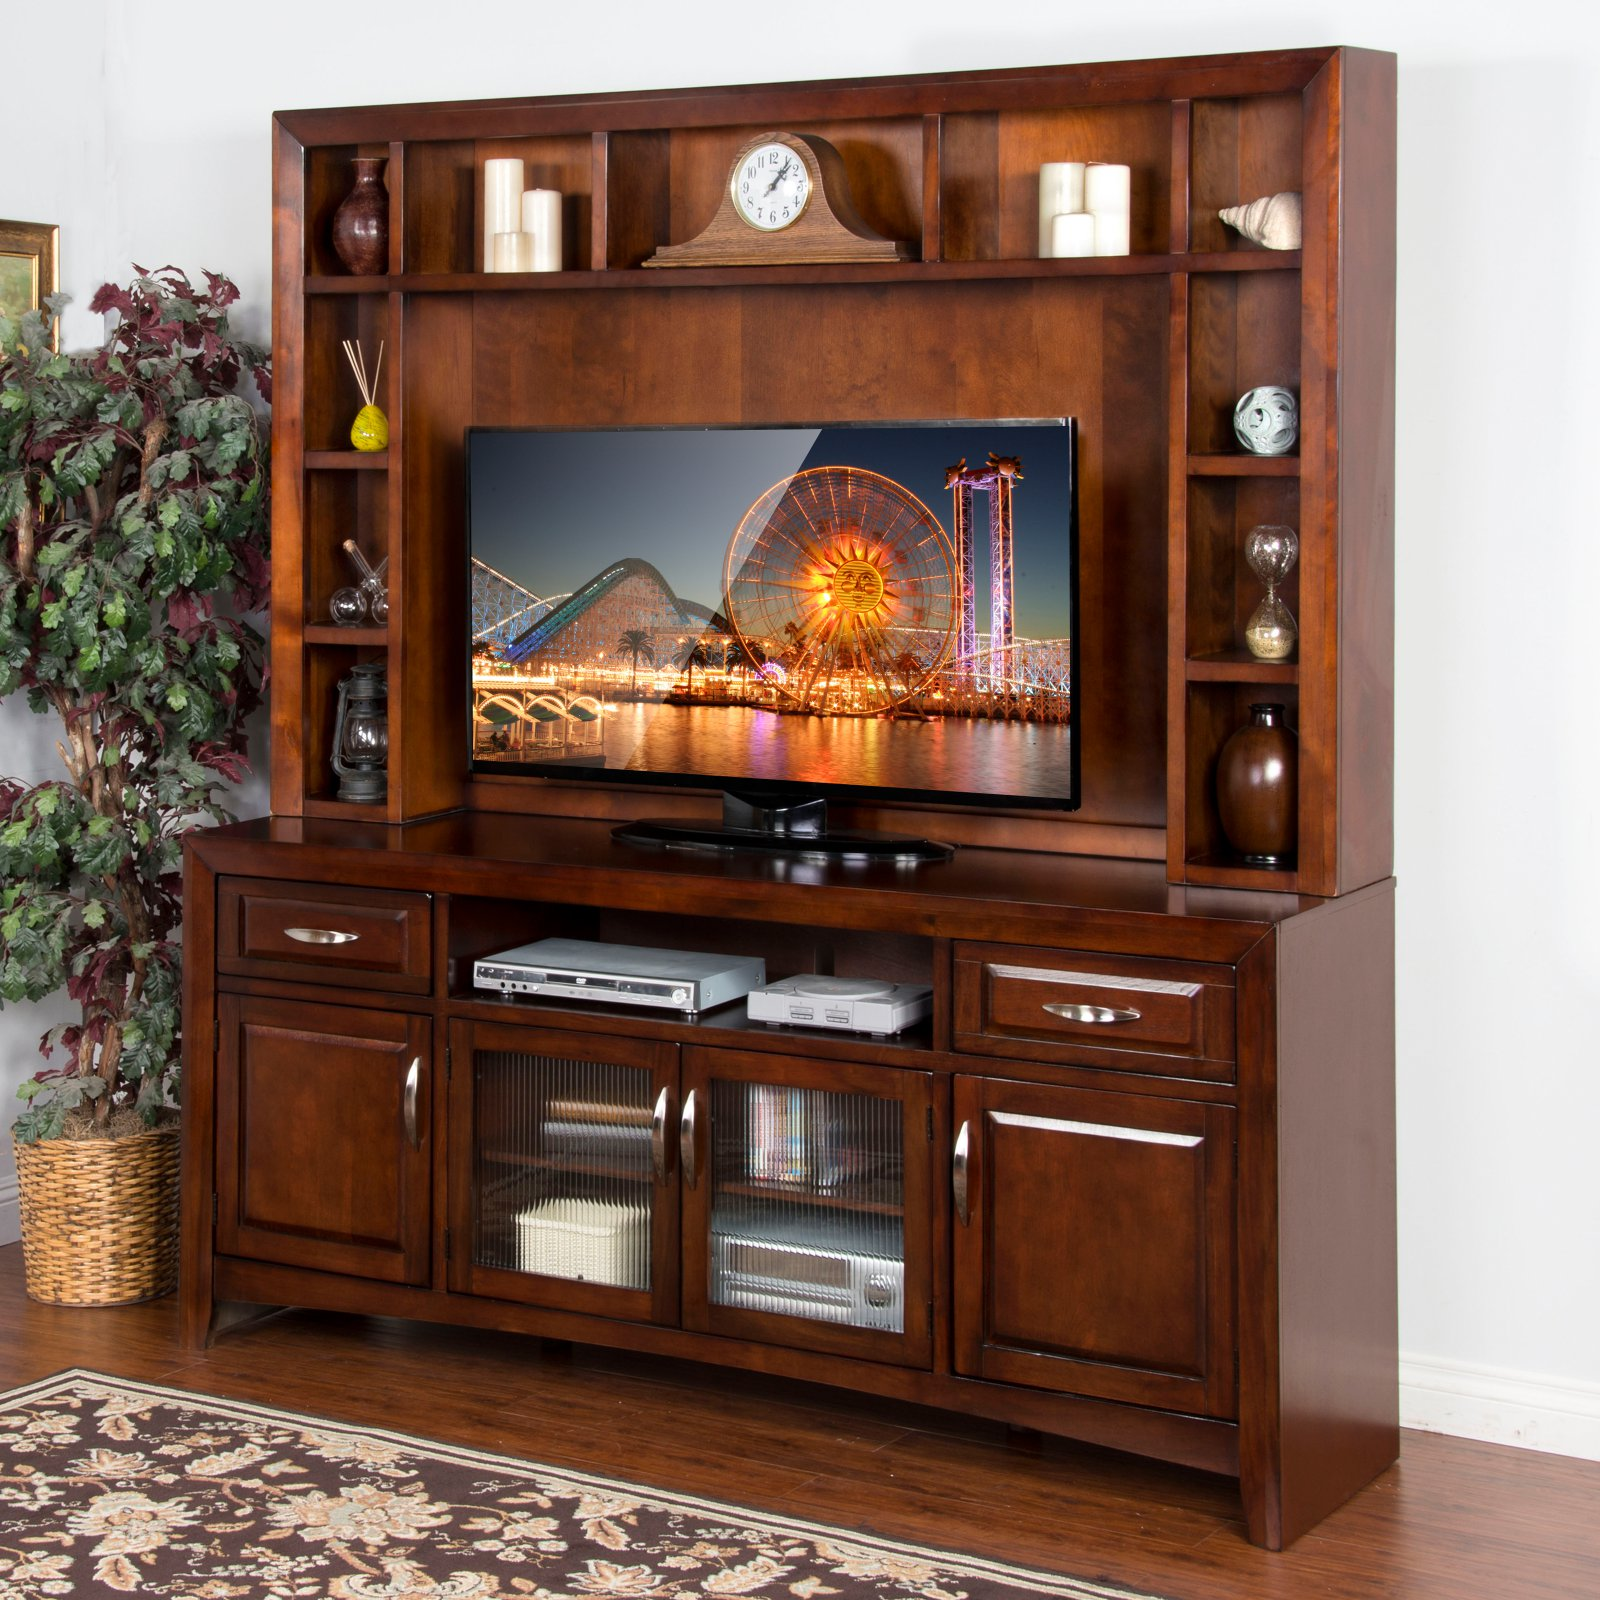 Sunny Designs Cappuccino 80 in. TV Console with Hutch